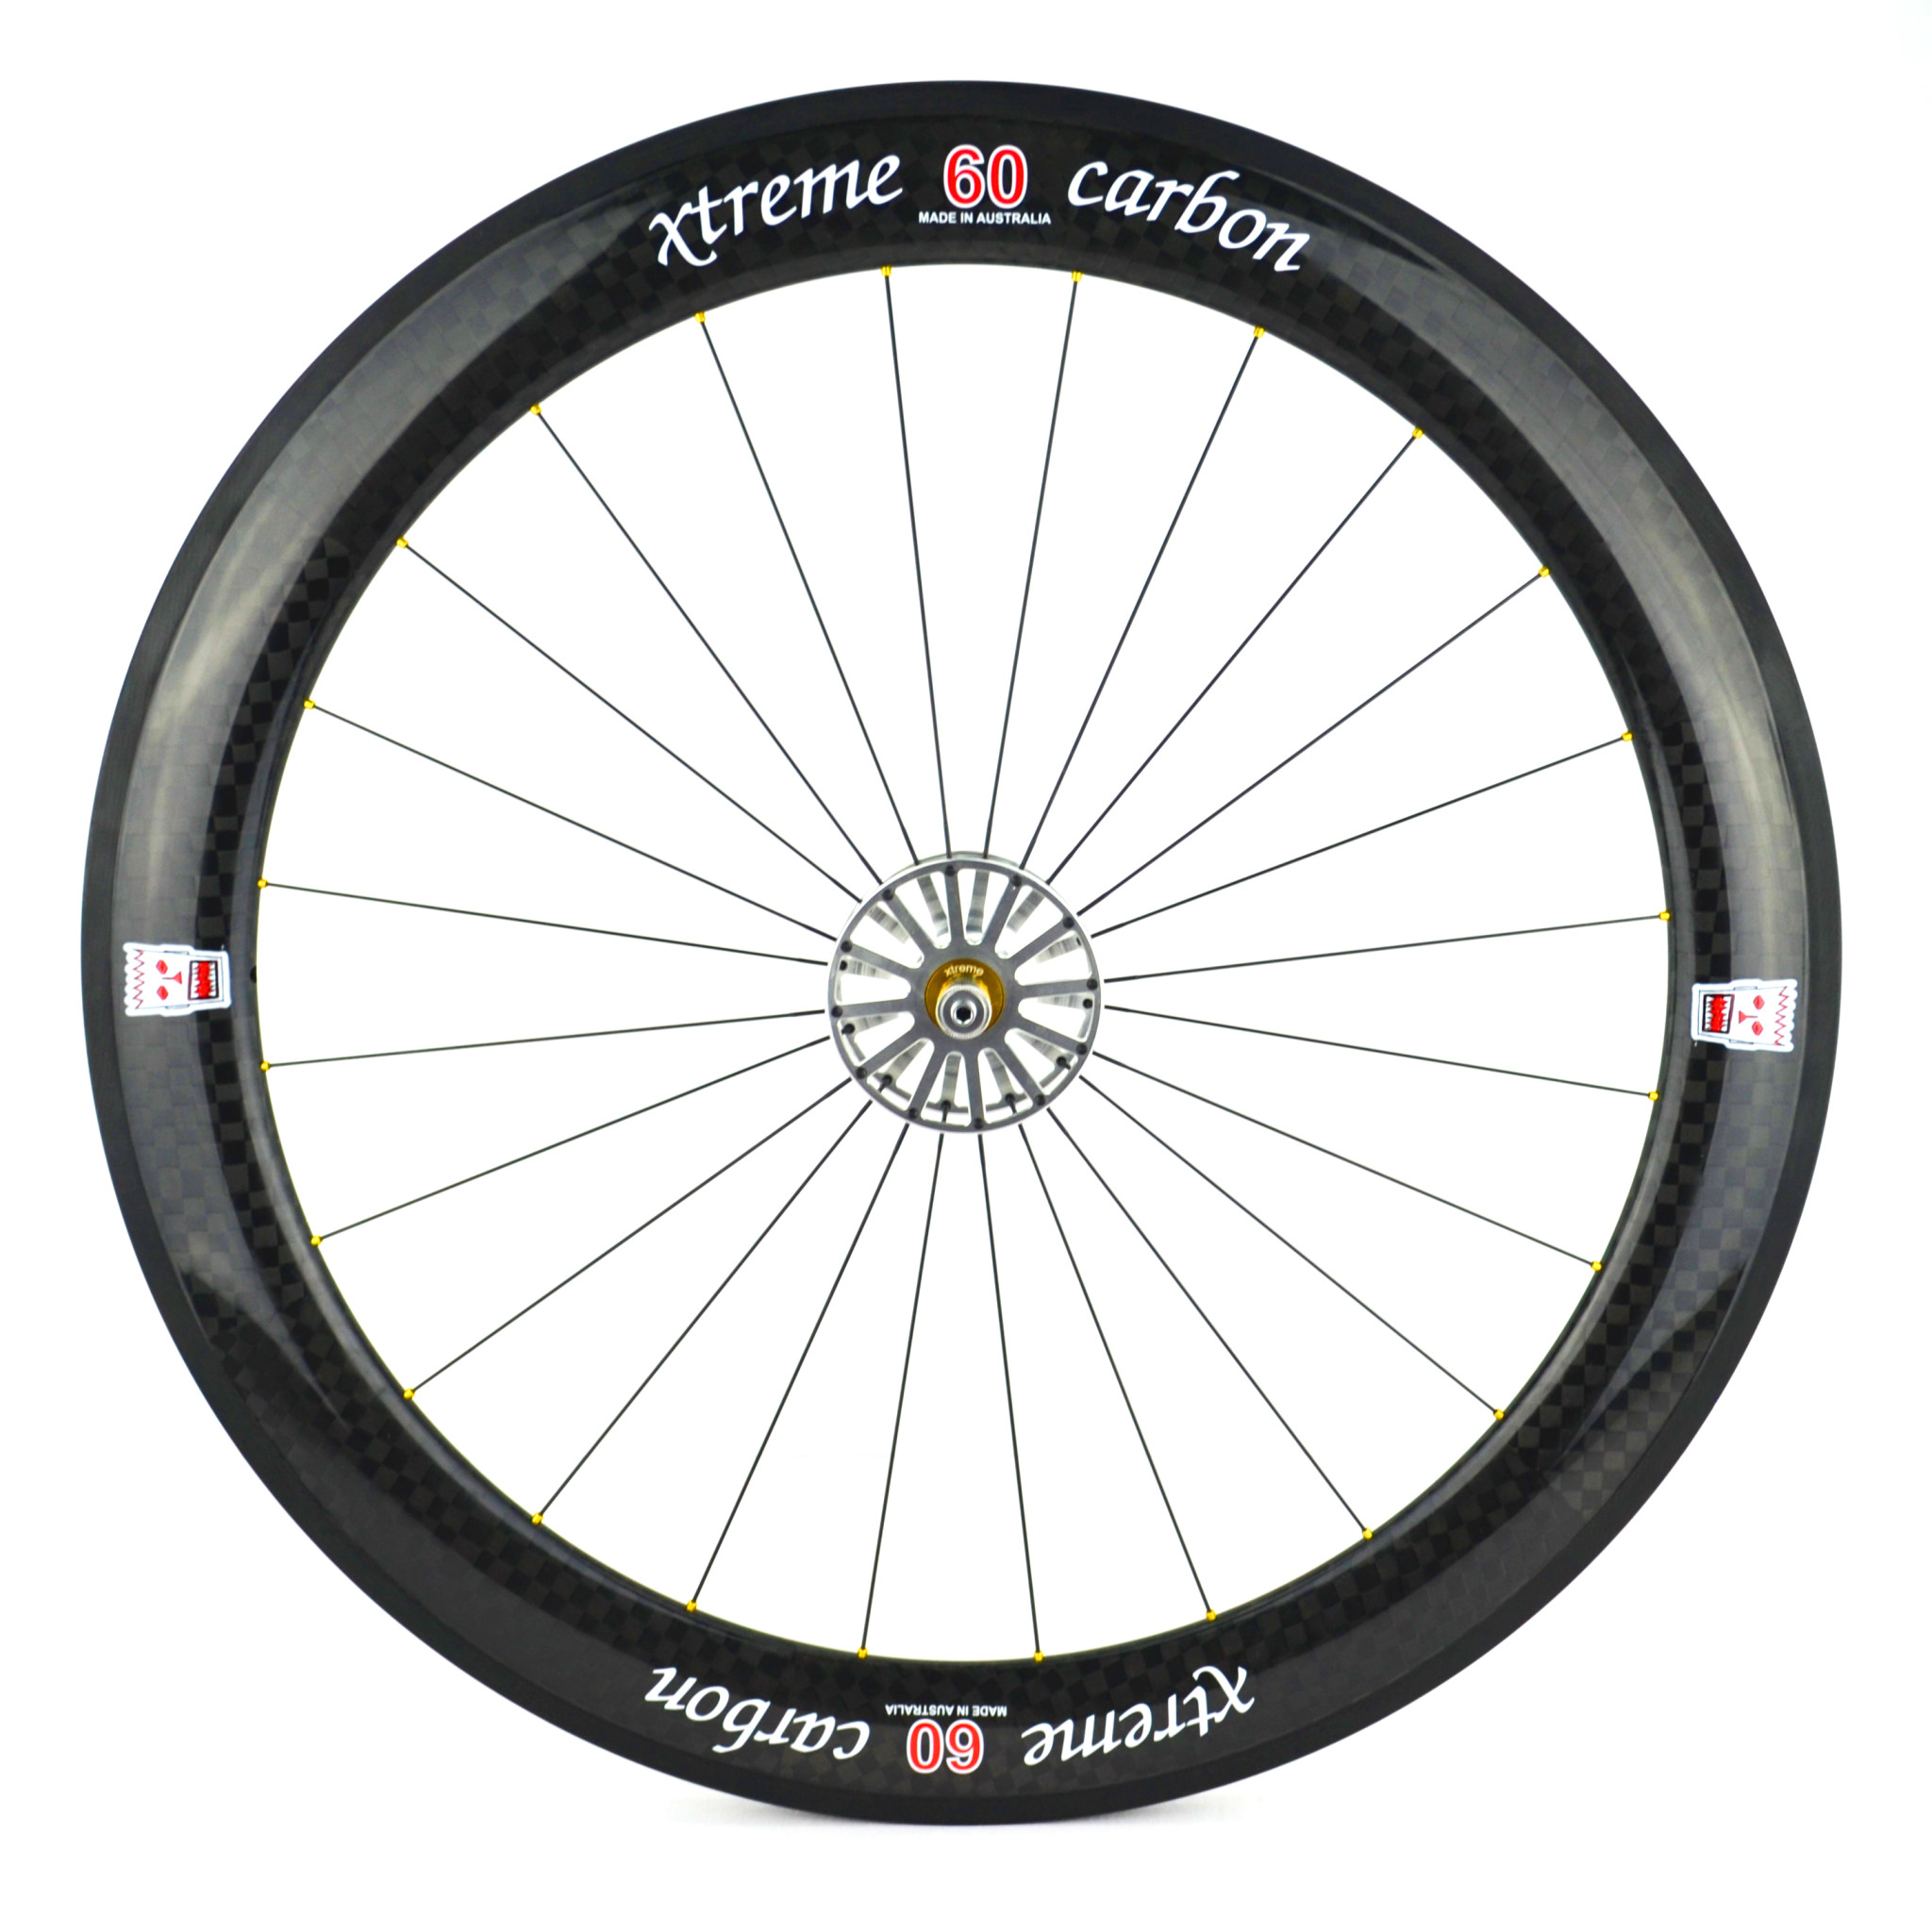 60 race grade carbon race wheel